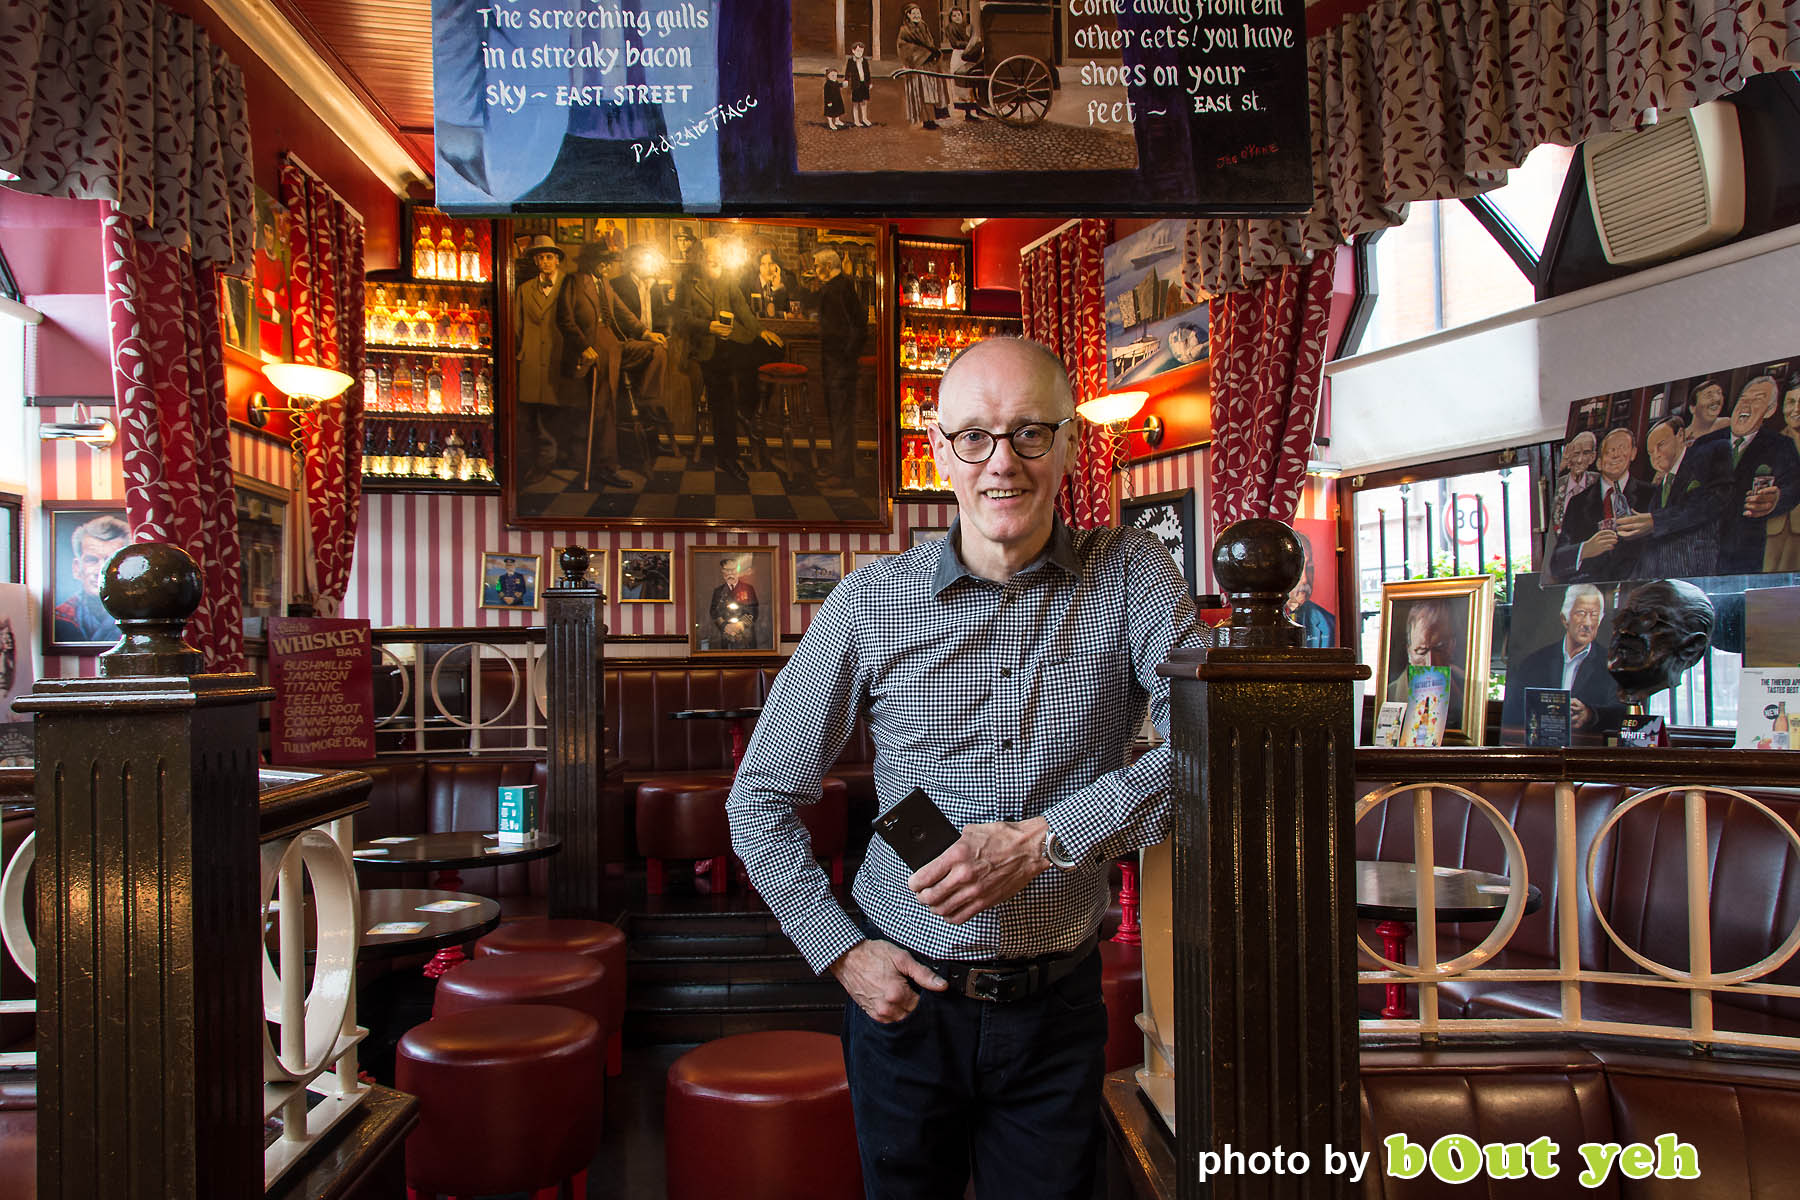 John Bittles, Bittles Bar, by Bout Yeh photographers Belfast - photo 5016. Editorial feature about John Bittles, owner of Bittles Bar, Belfast. Northern Ireland